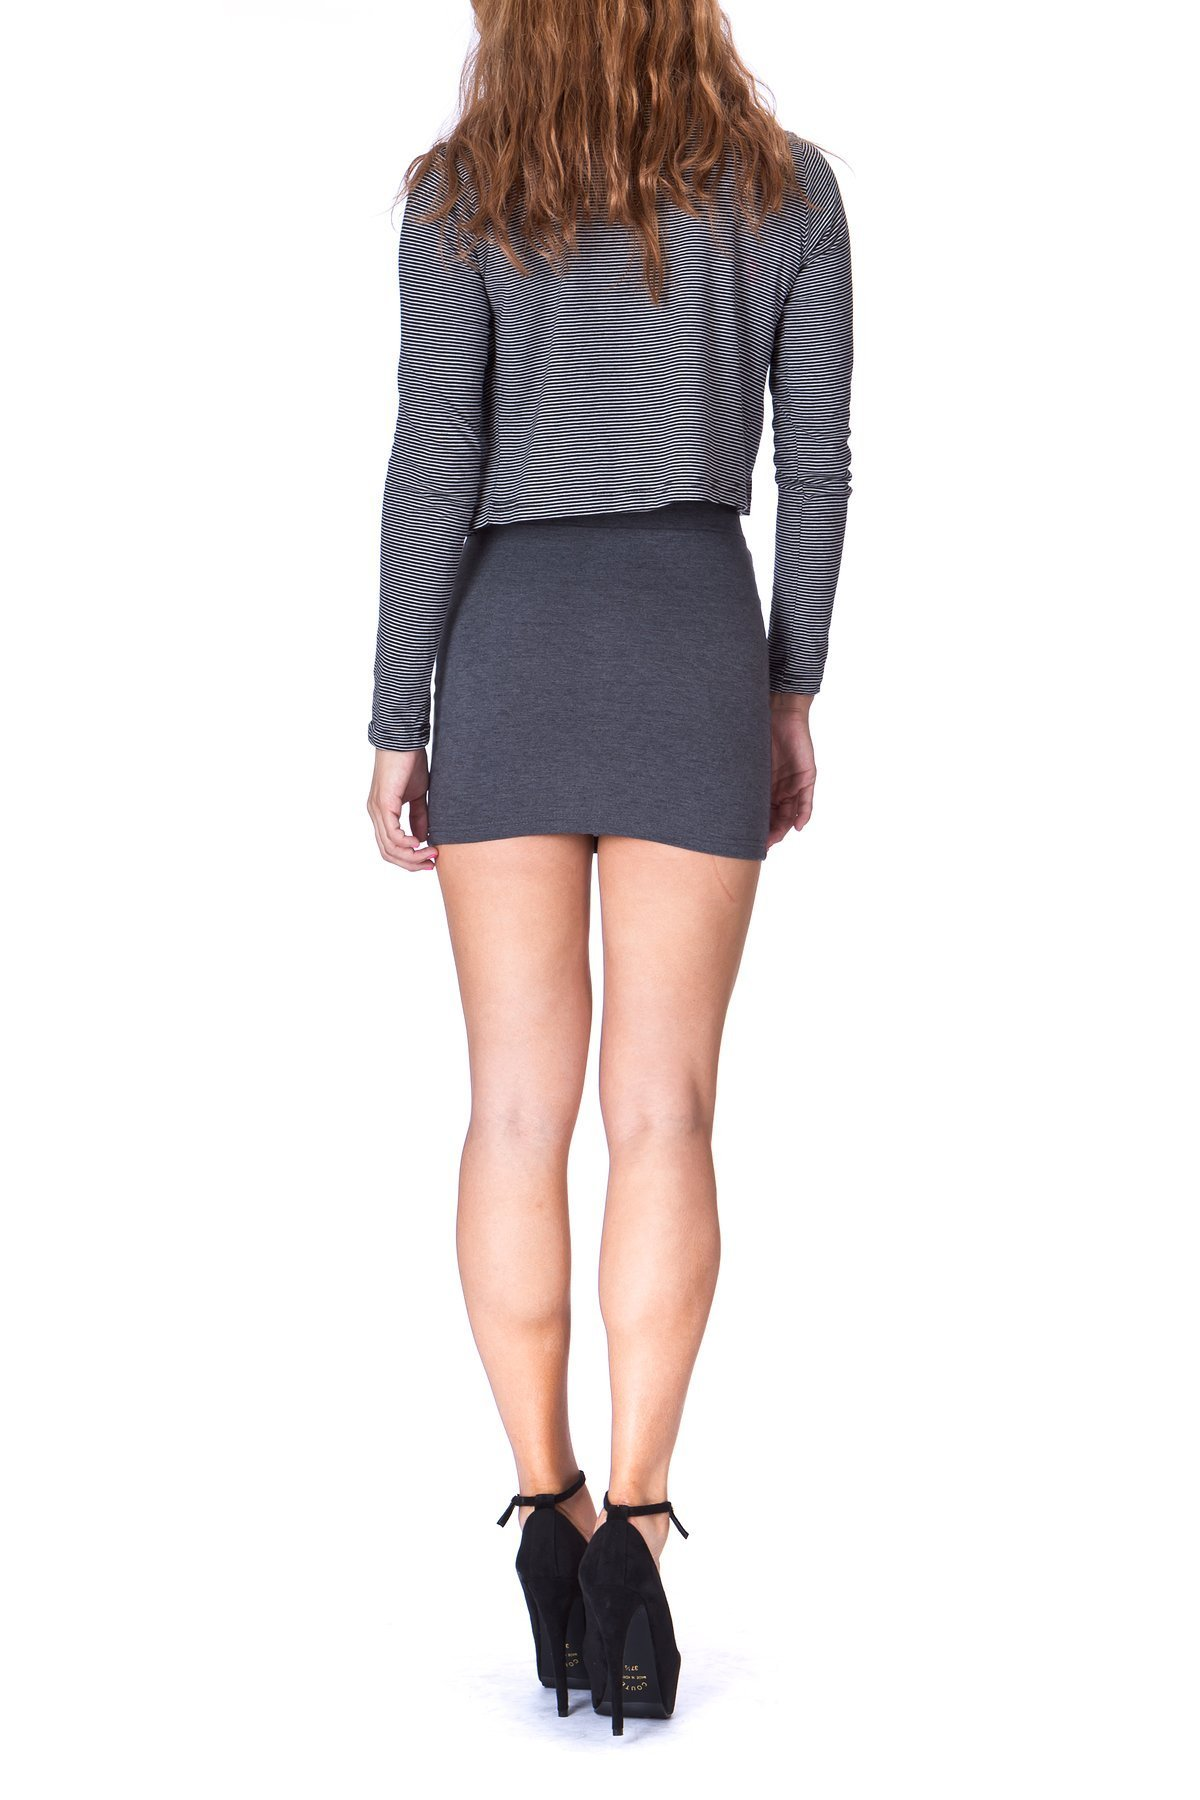 Must buy Basic Bodycon Pencil Short Mini Skirt Charcoal 4